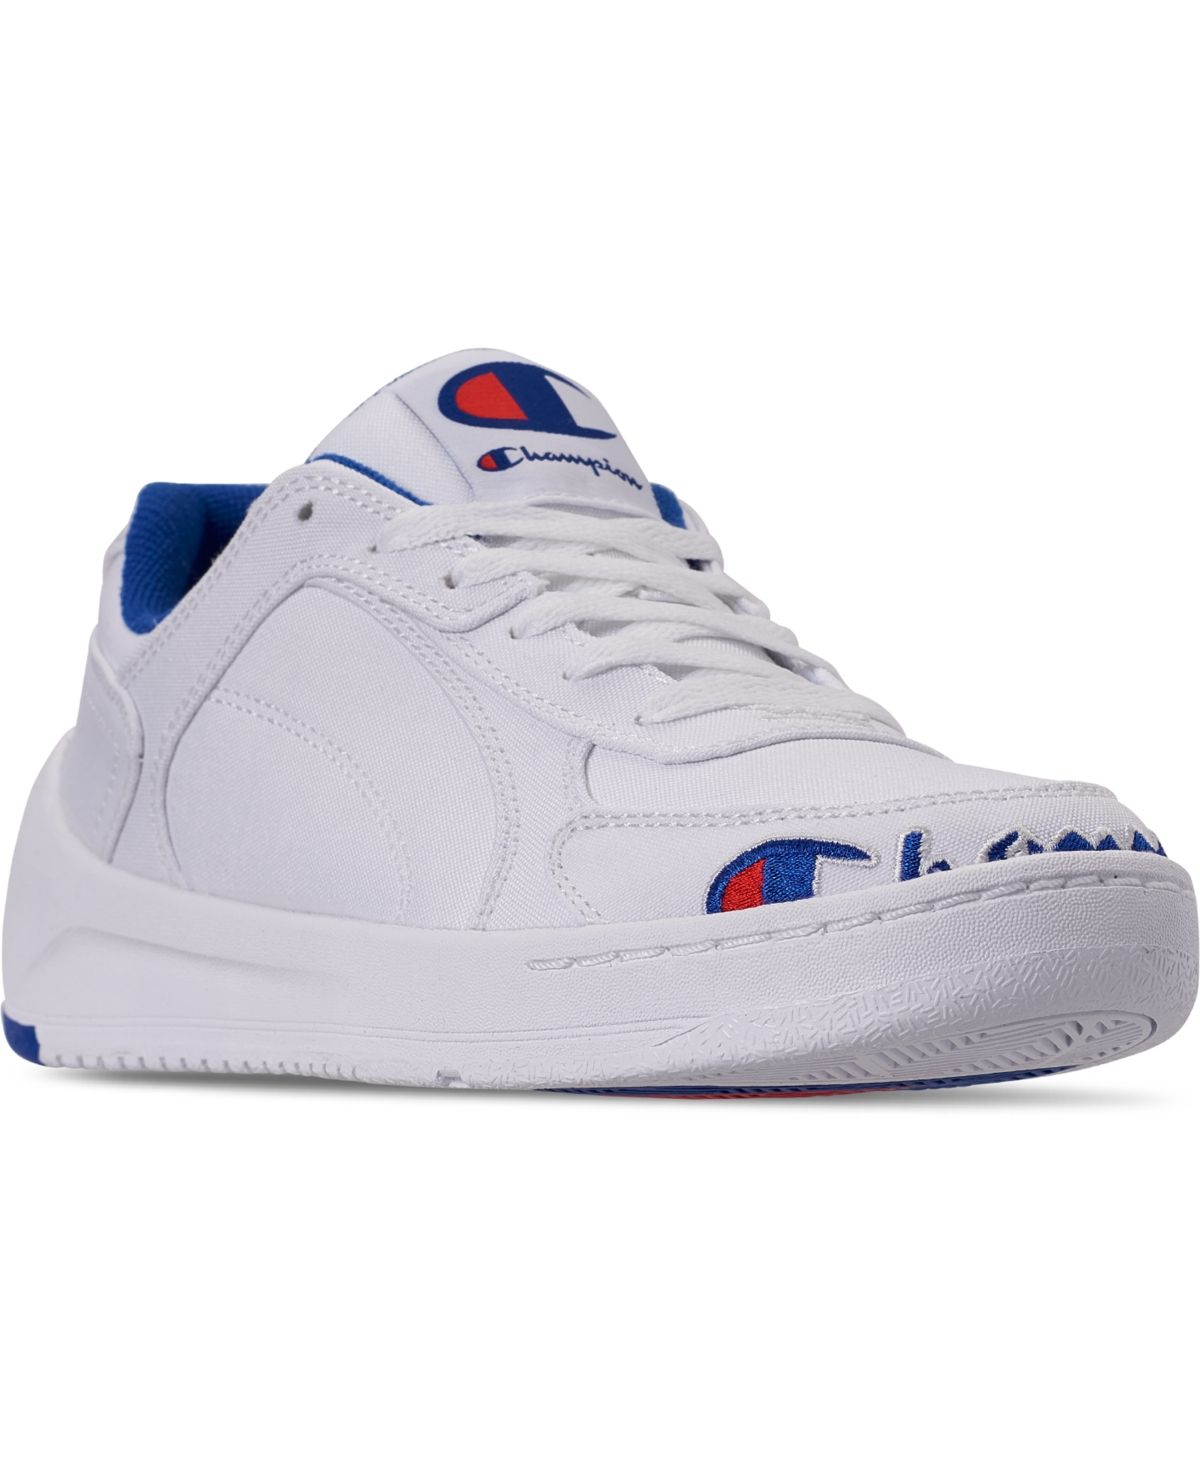 Athletic sneakers, Casual shoes